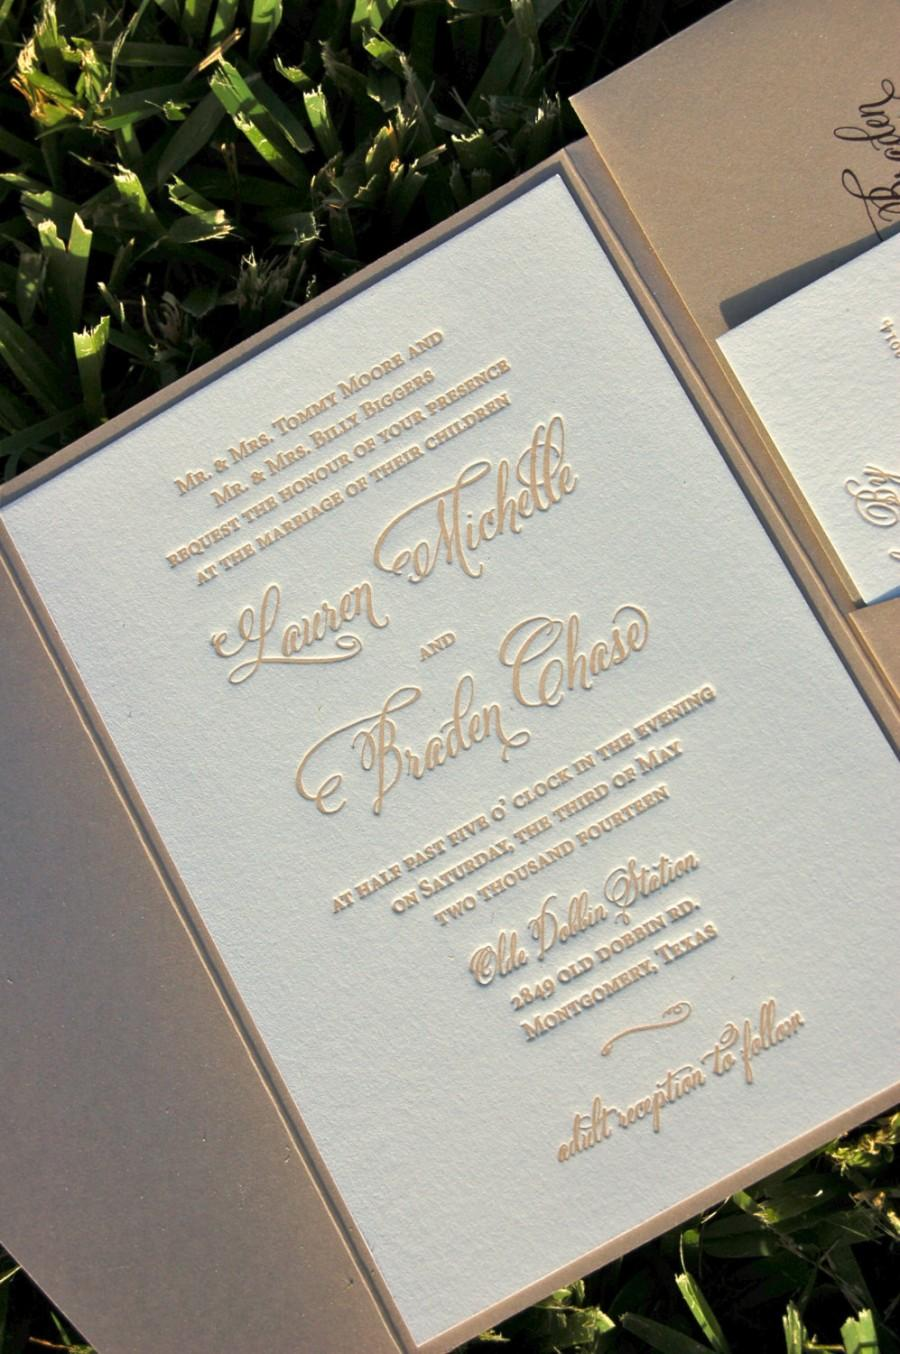 Fawn and champagne wedding invitation letterpress wedding for Letterpress wedding invitations manila philippines